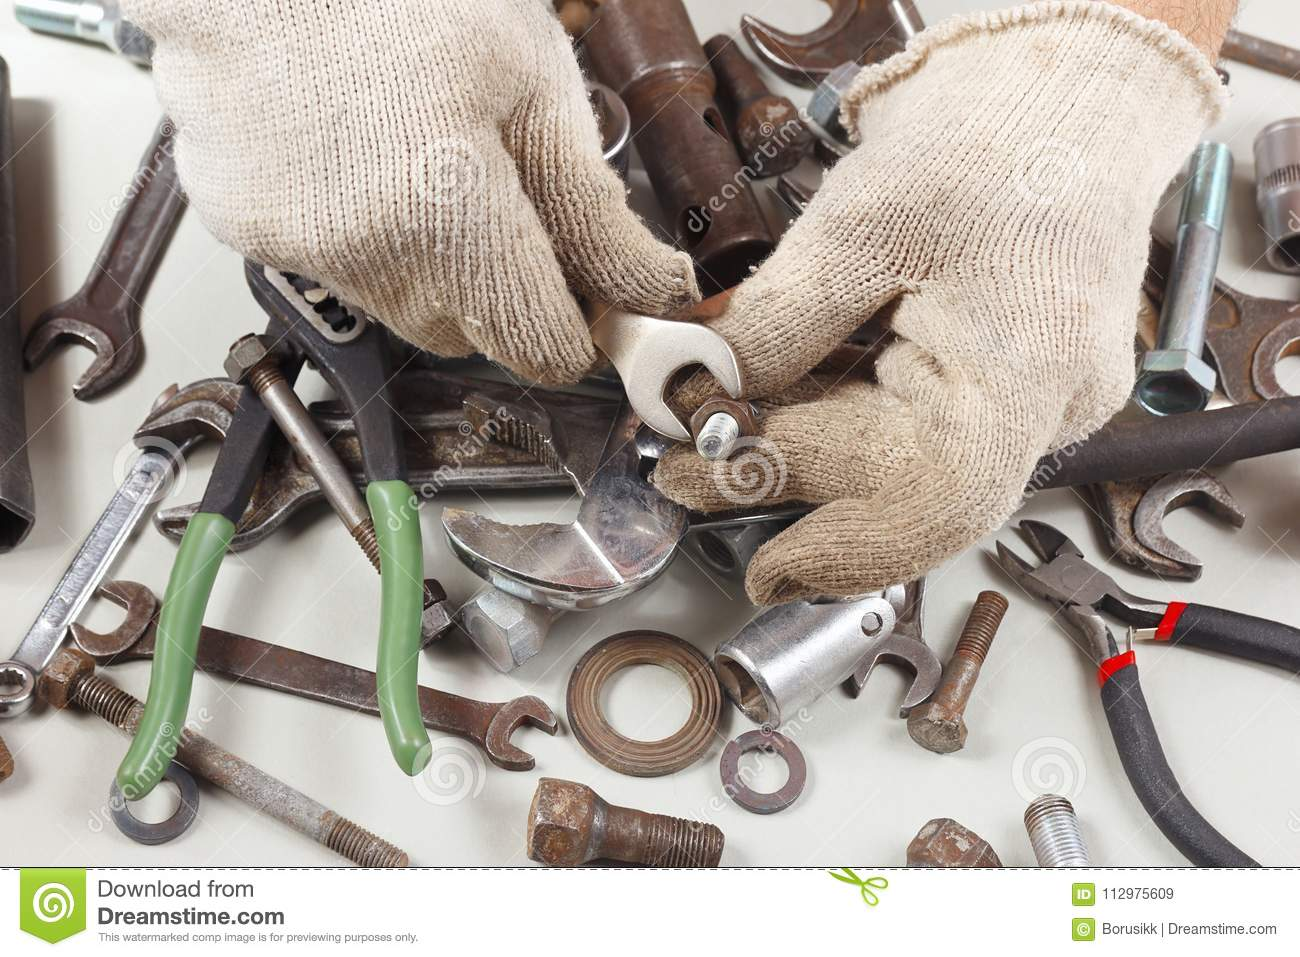 Hand of serviceman in gloves with wrench to tighten the nut